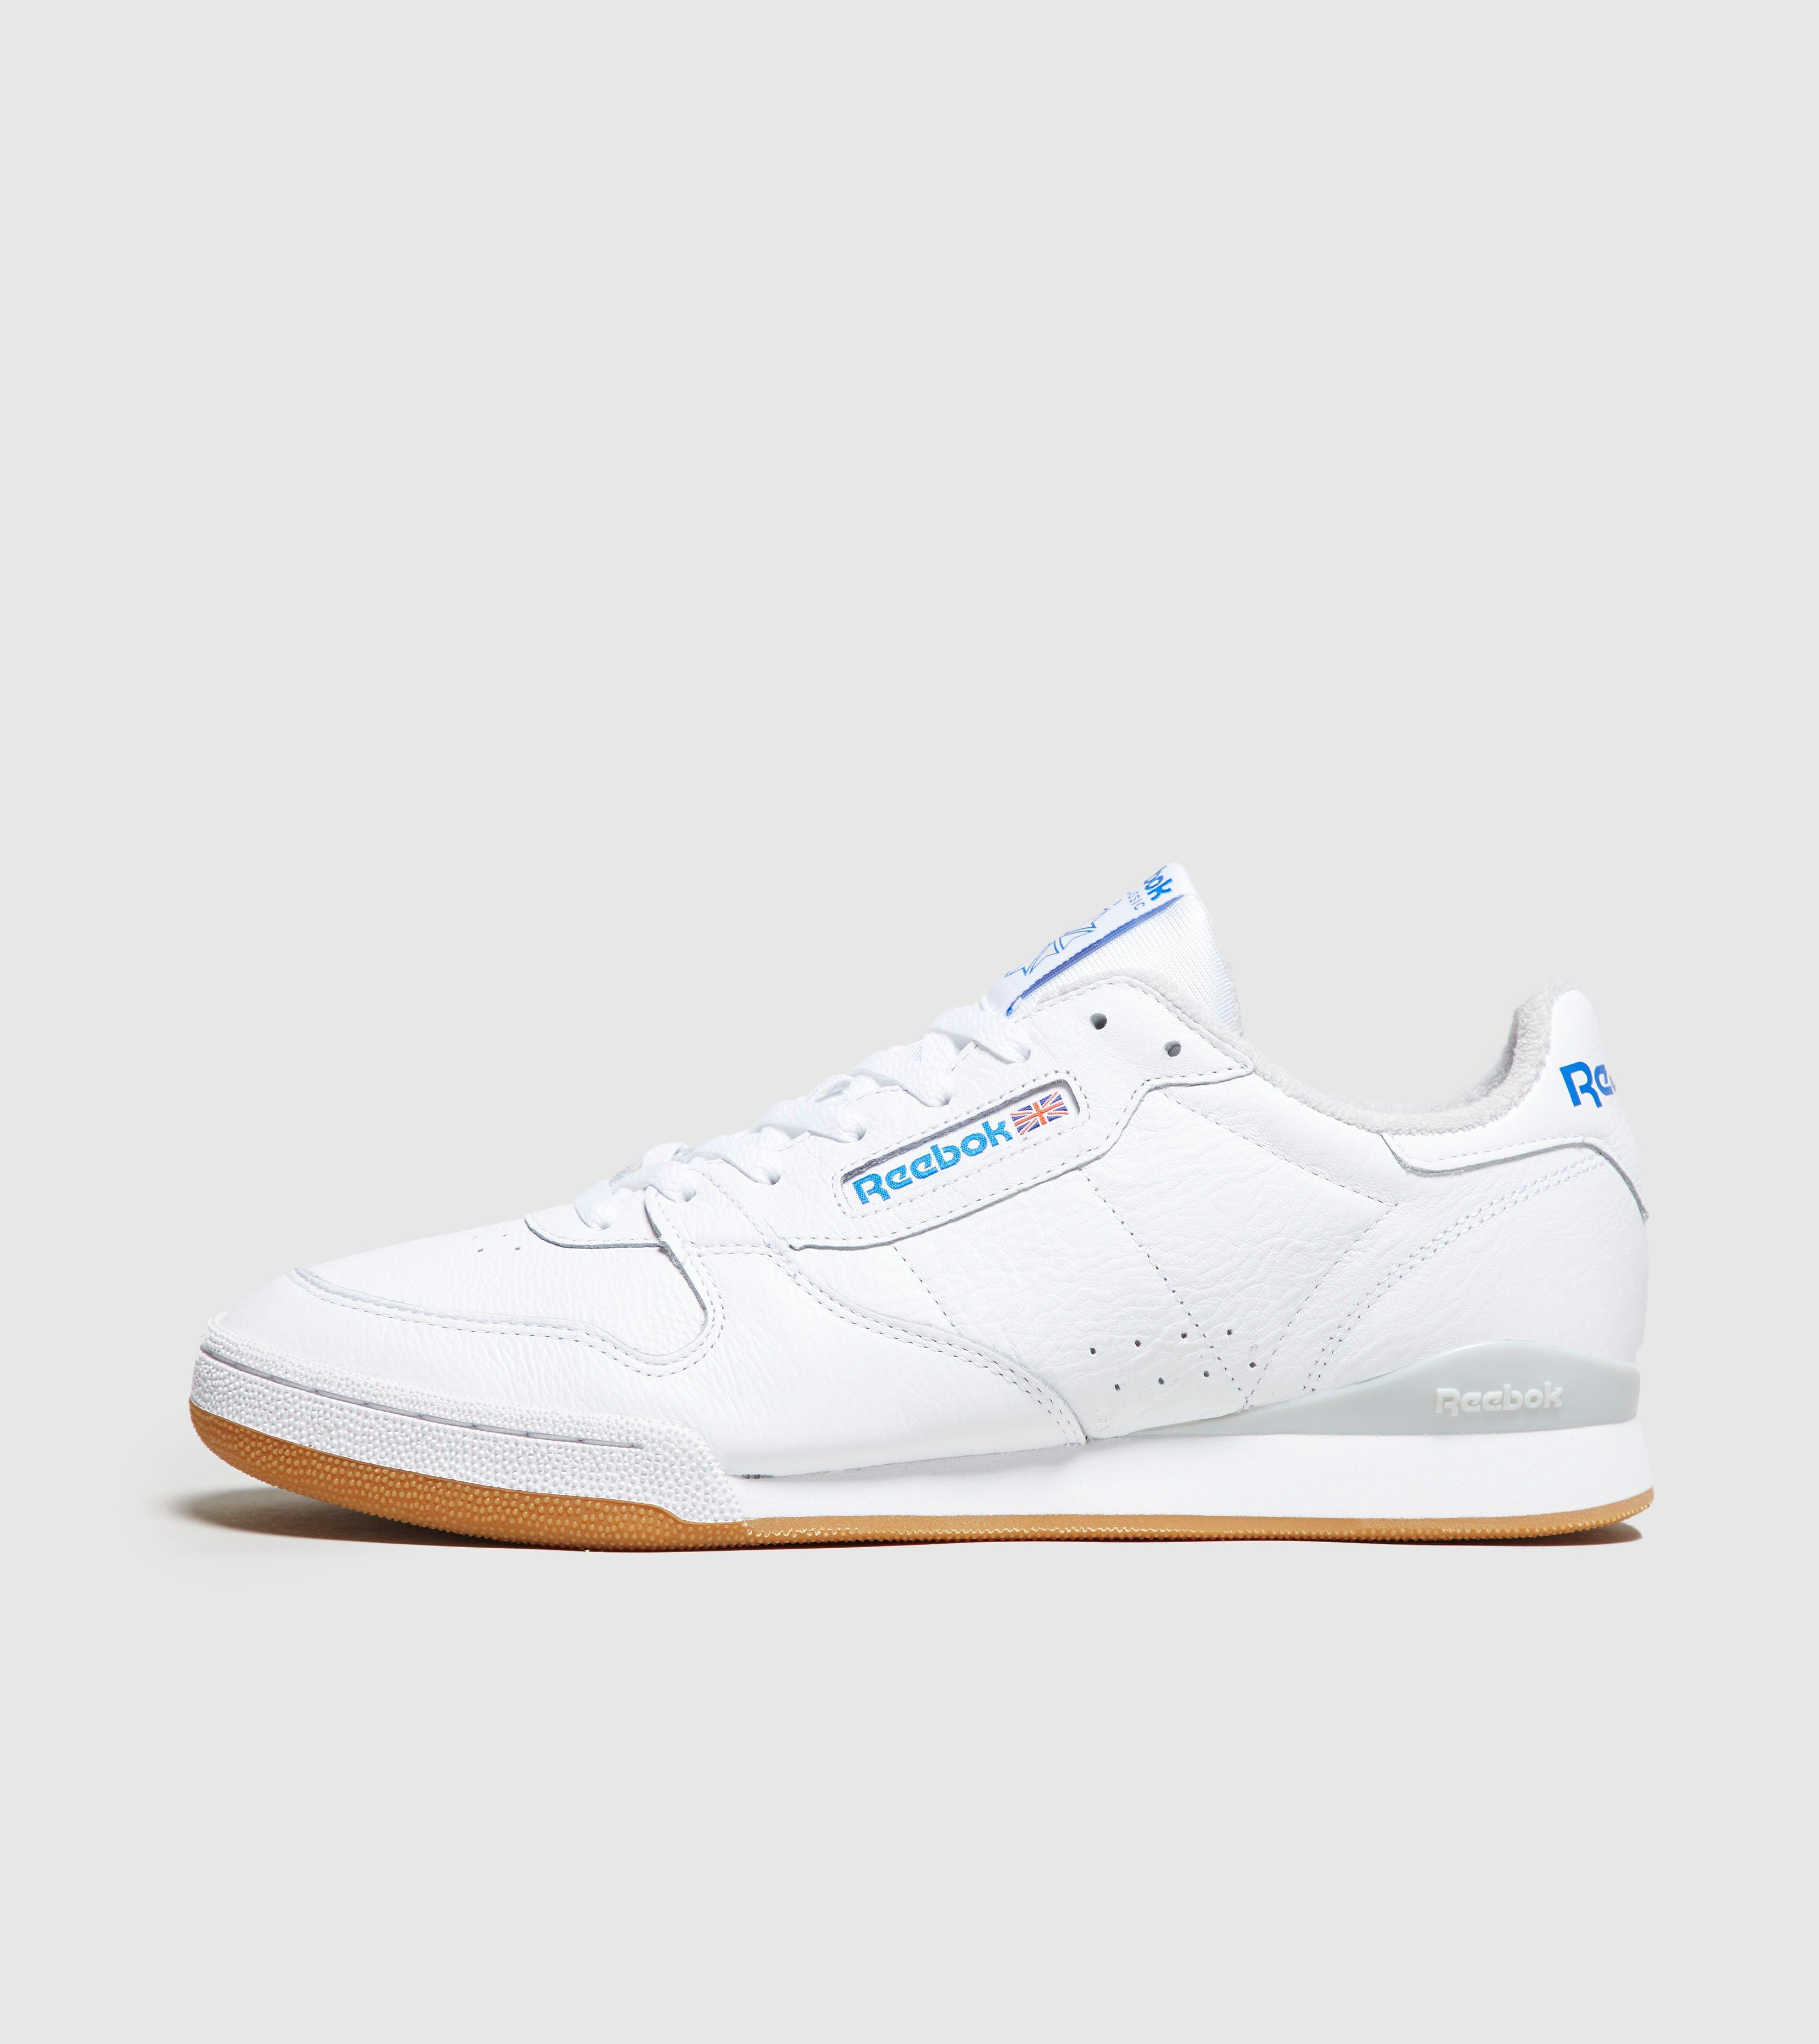 ... sneakers uo34203jq  lyst reebok phase 1 in white for men 0a55b27fe